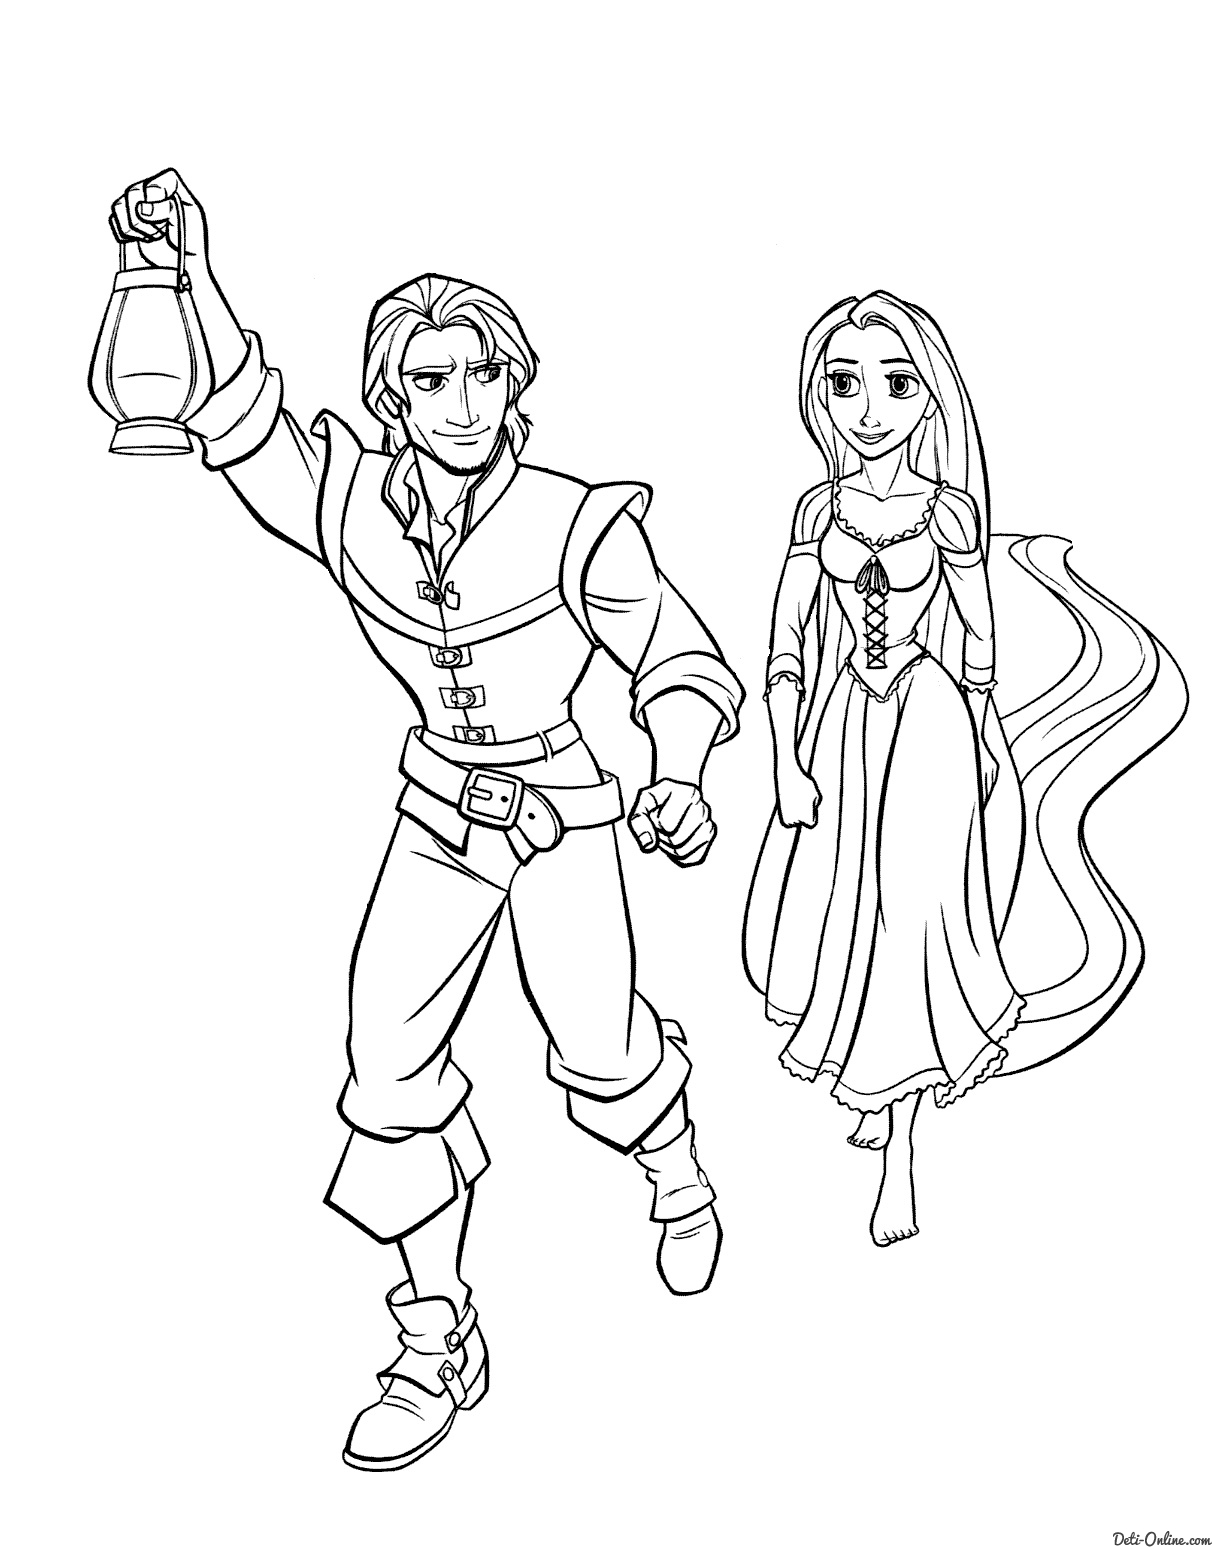 Tangled Coloring Pages - Раскраска Рапунцель и Флинн в пути